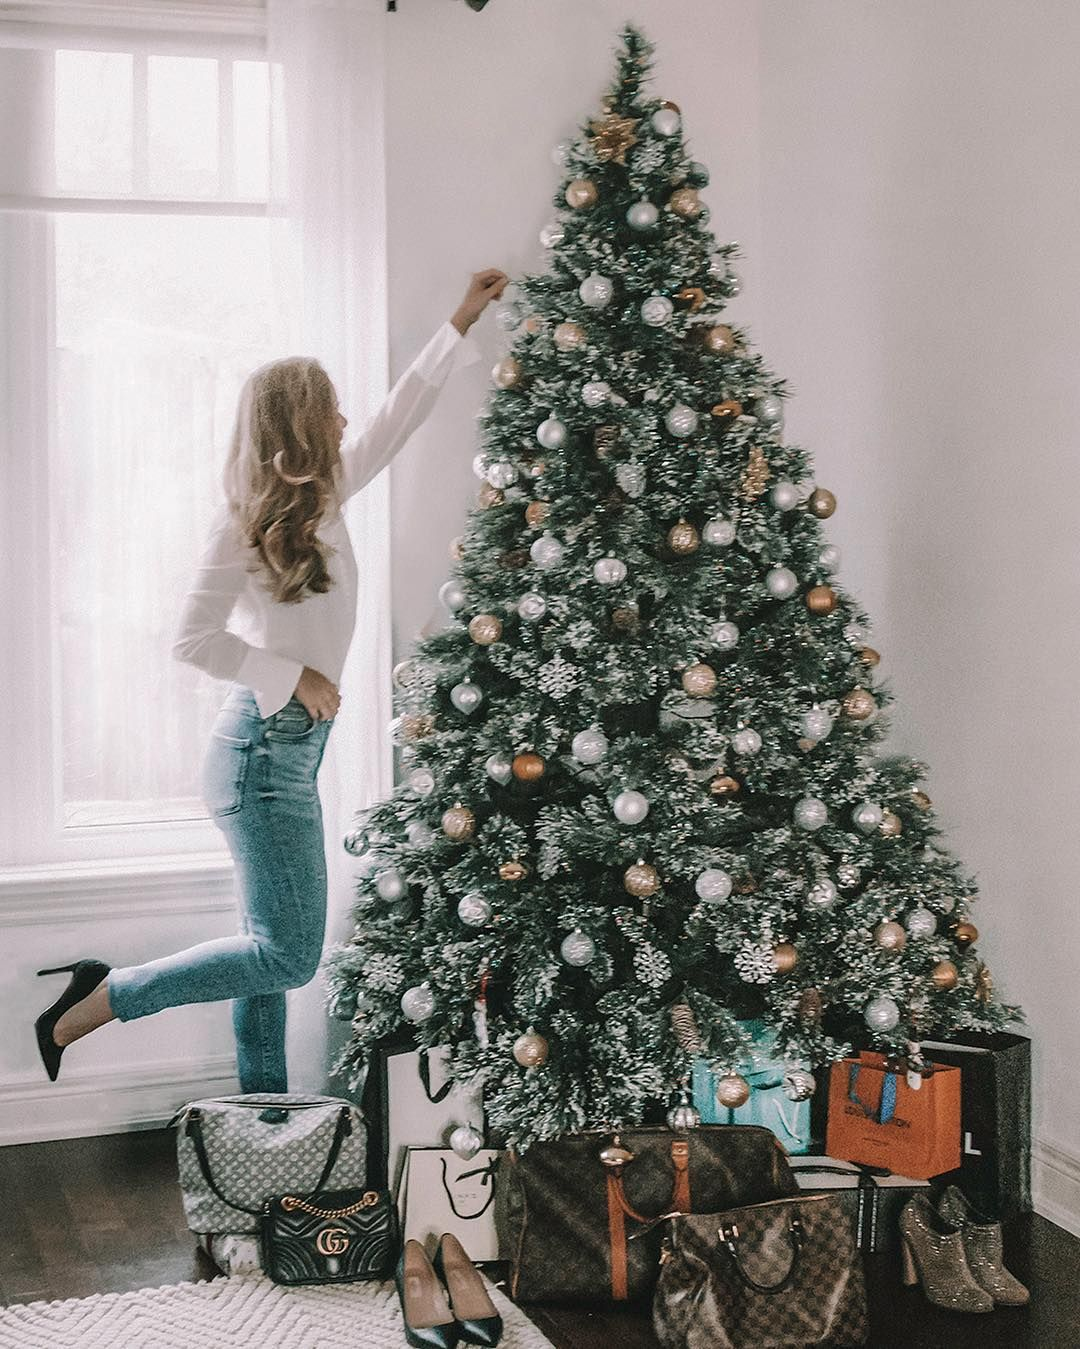 Luxury Gifts Under A Frosted Christmas Tree Selling Some Of My Luxury Pieces Visit My Instagram For The Frosted Christmas Tree Christmas Tree Holiday Decor